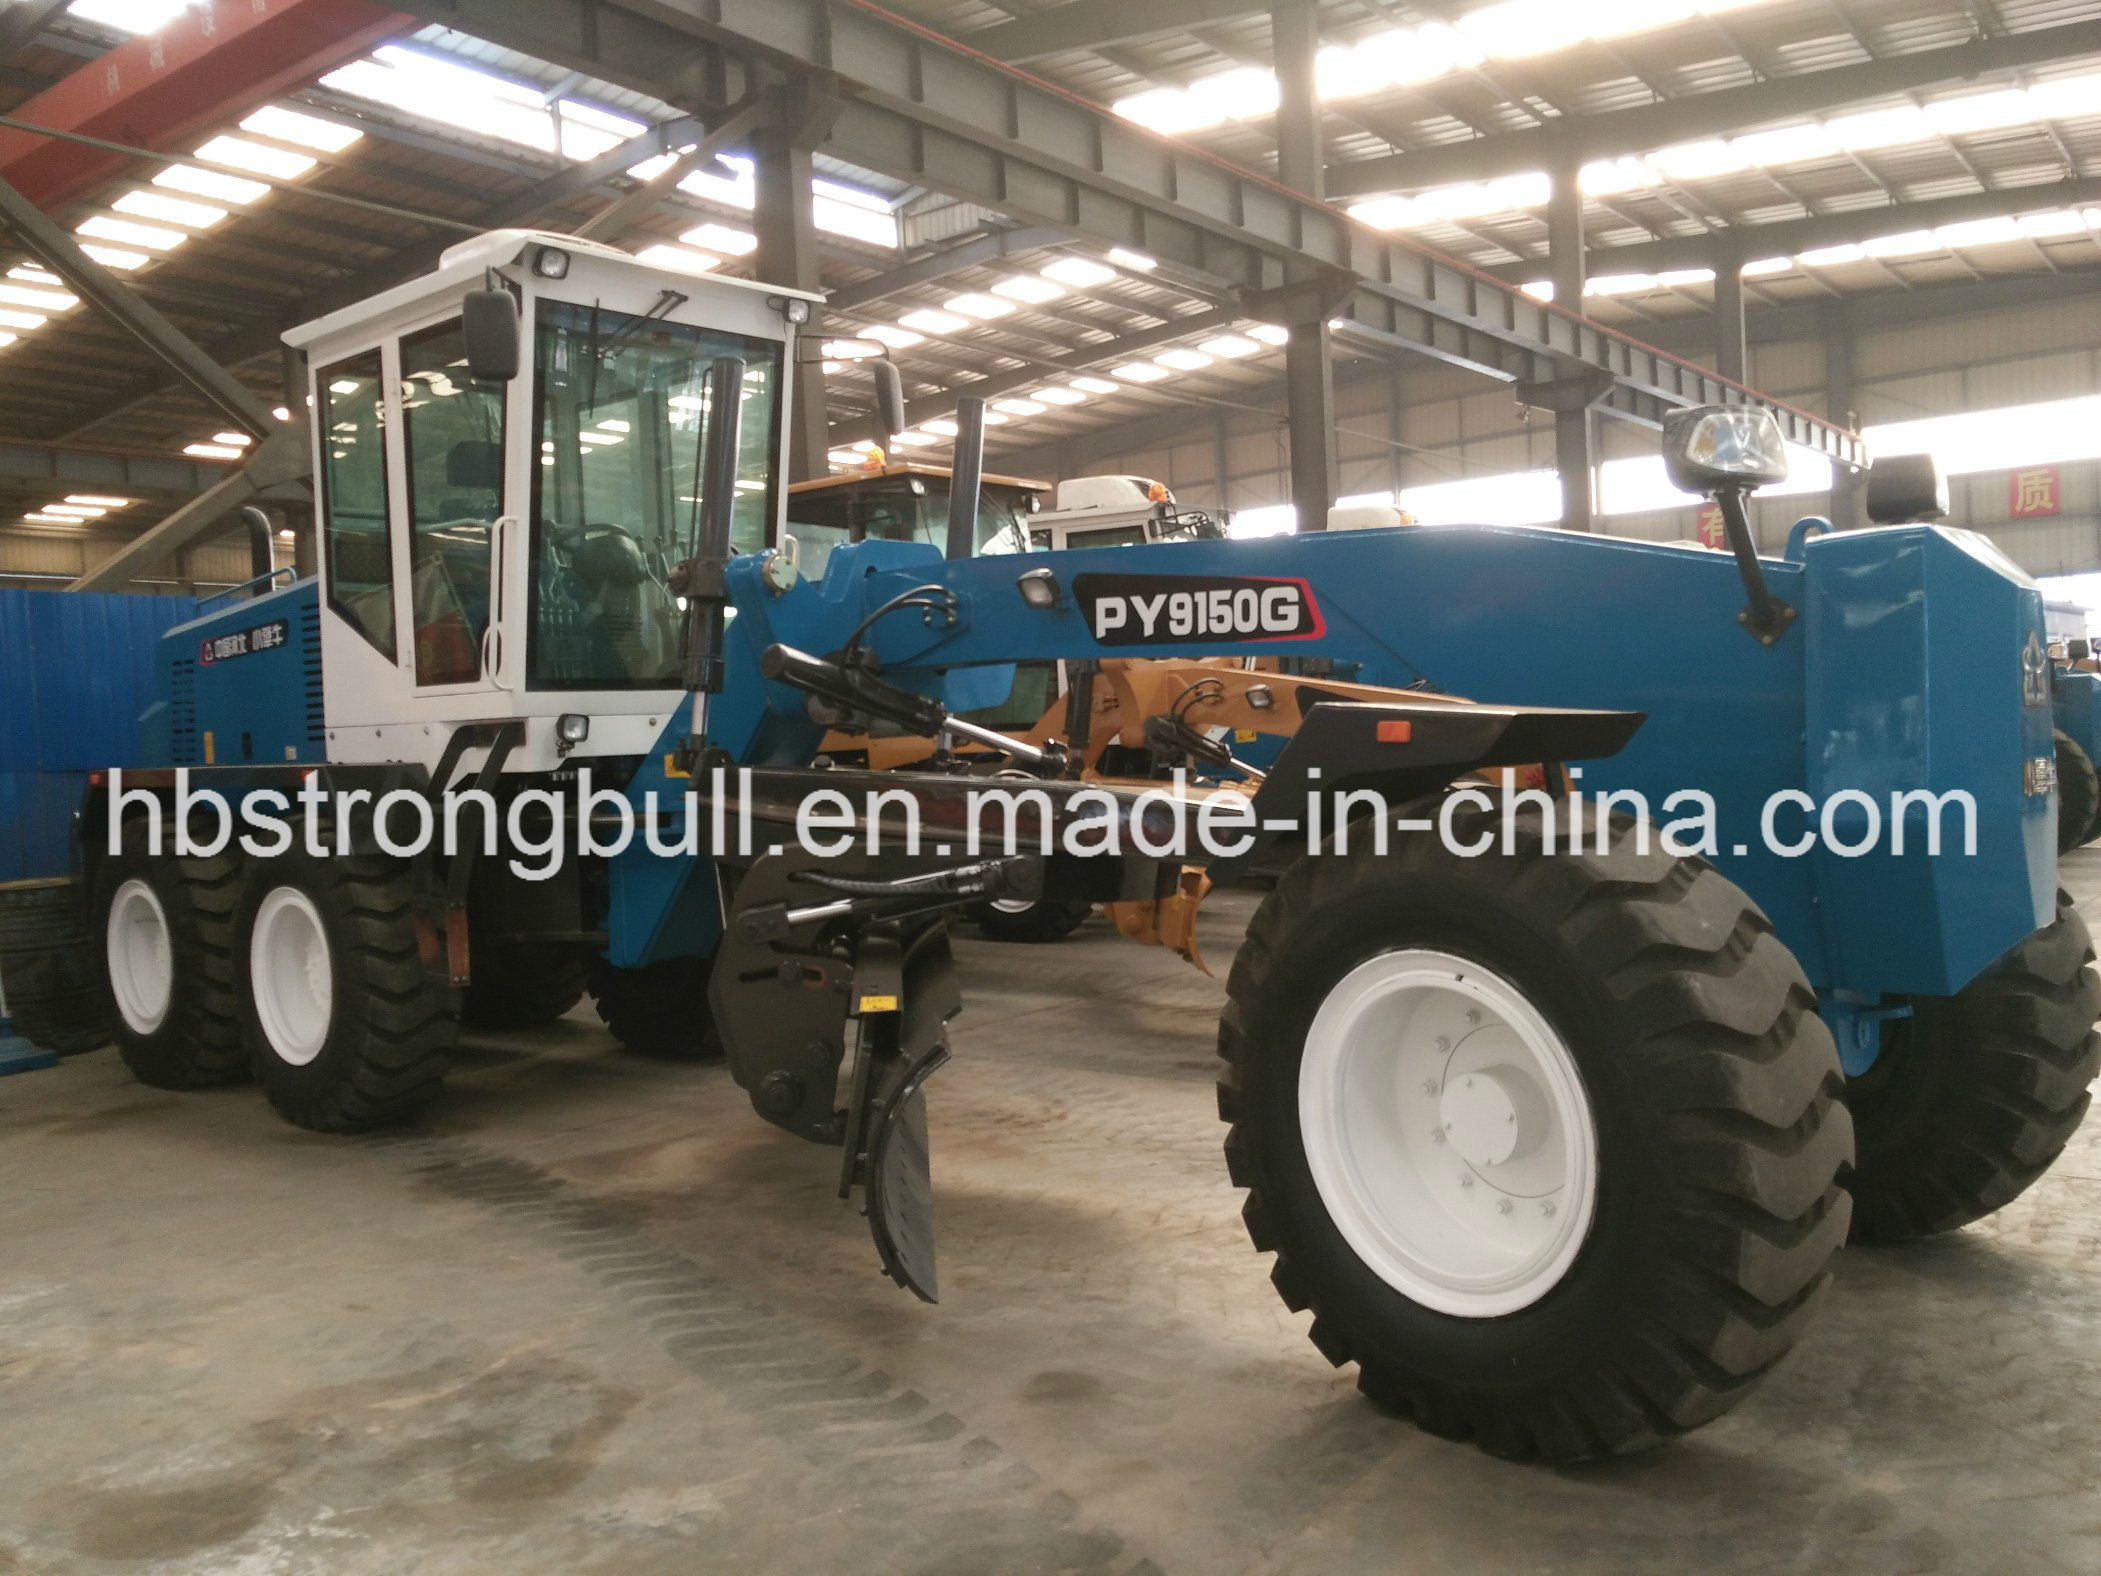 China Road Construction Machine Motor Grader Py9150 New Condition 150HP Tractor Road Grader for Sale